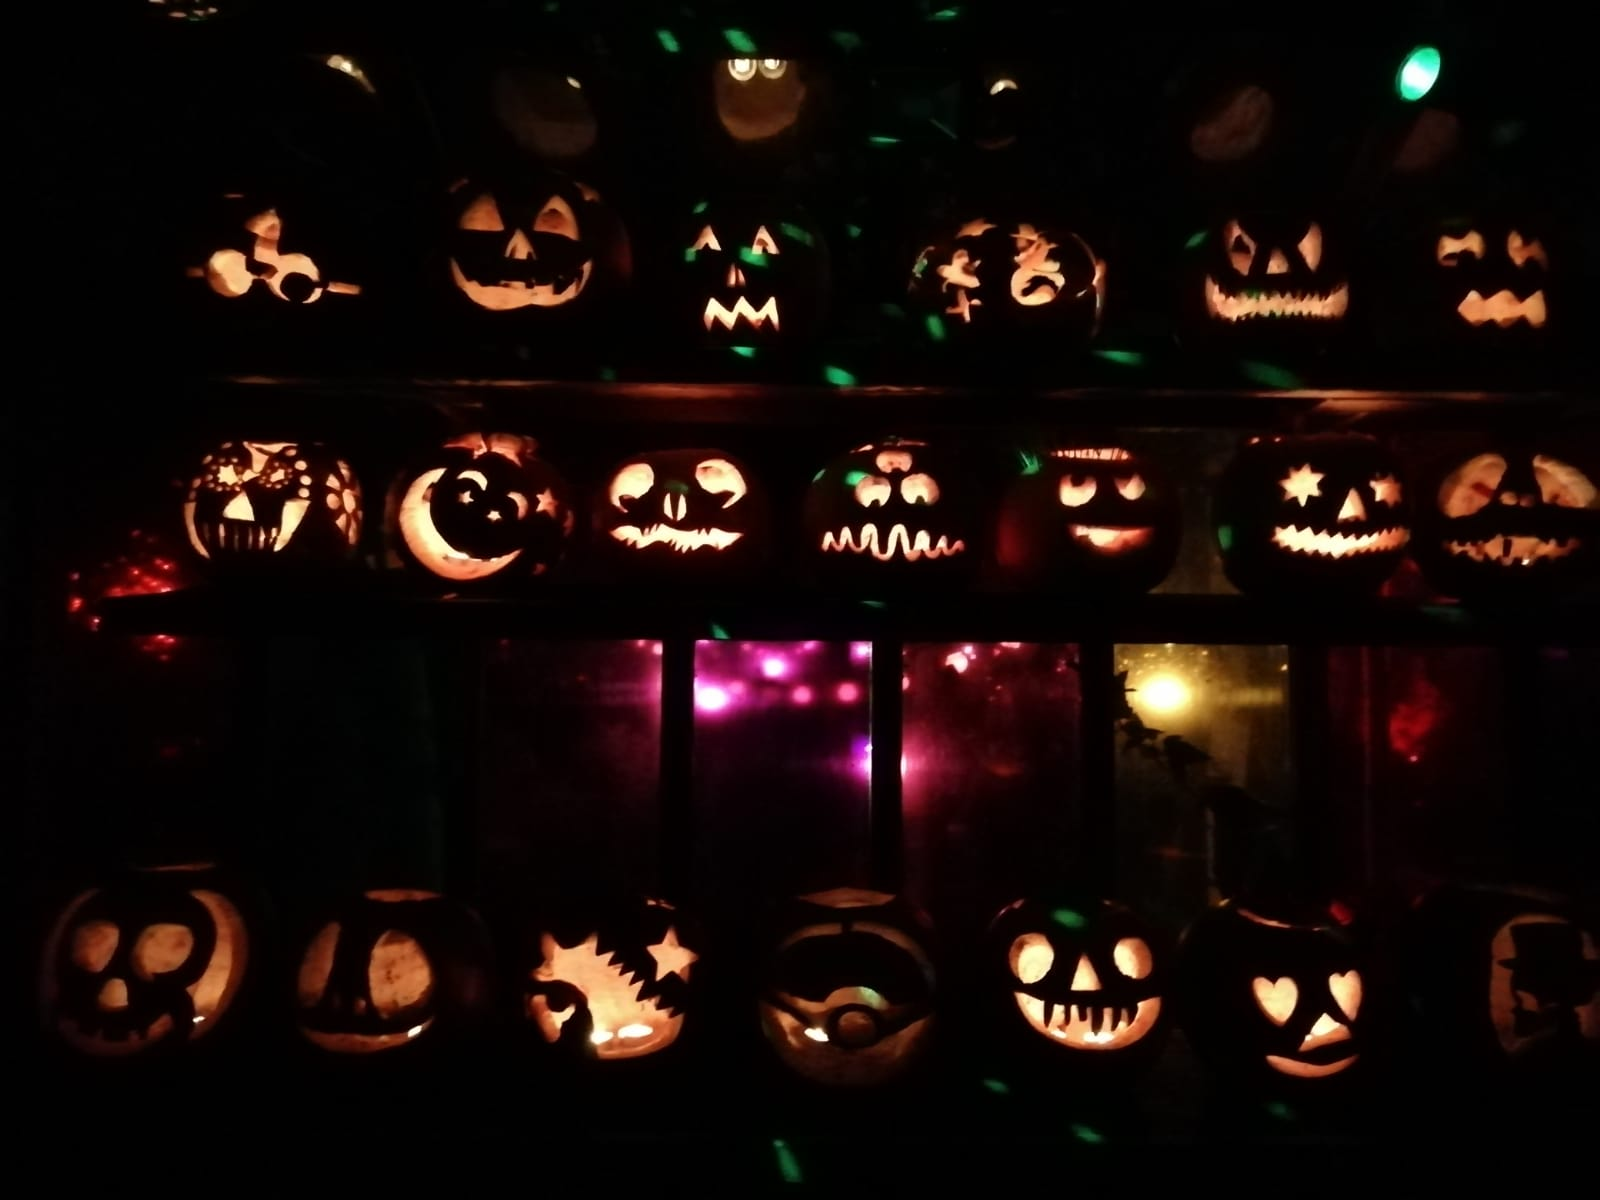 Brilliantly carved pumpkins at Dalston Eastern Curve Gardens, London